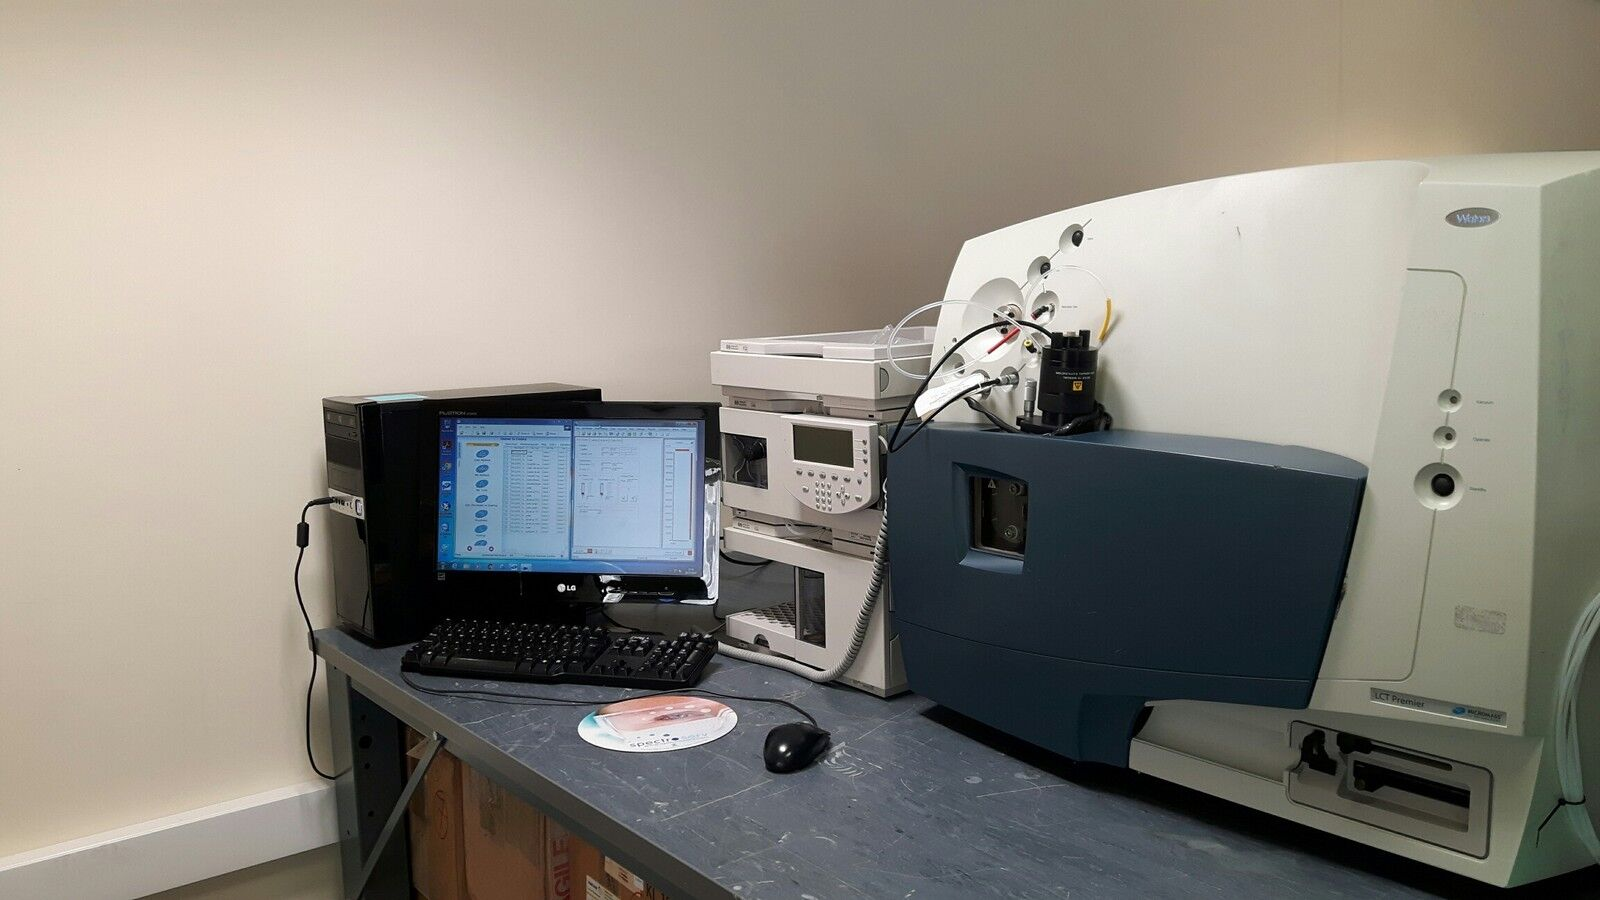 Waters LCT Premier MS with Agilent 1100 HPLC system